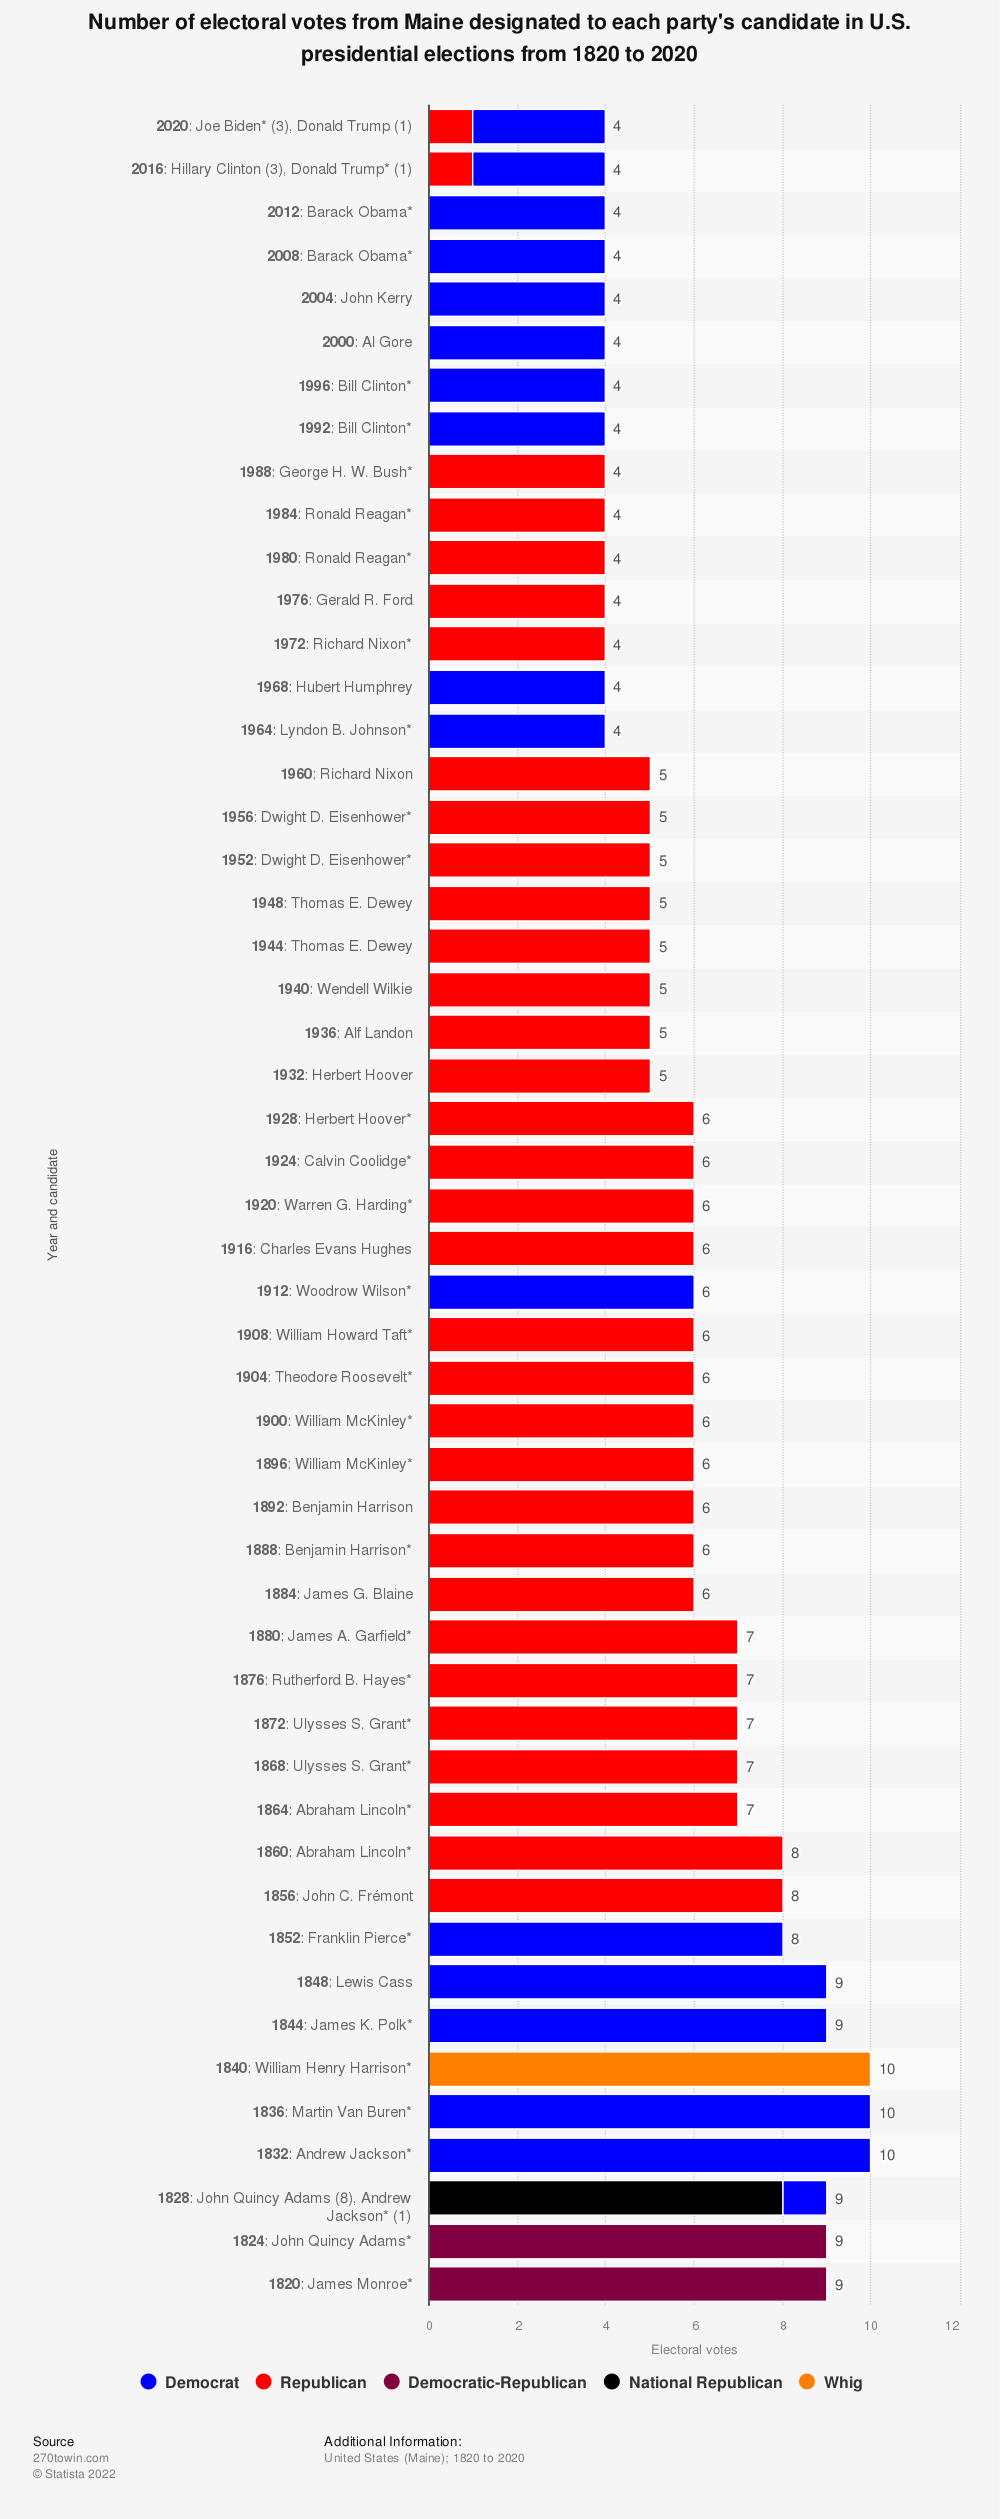 Statistic: Number of electoral votes from Maine designated to each party's candidate in U.S. presidential elections from 1820 to 2020 | Statista